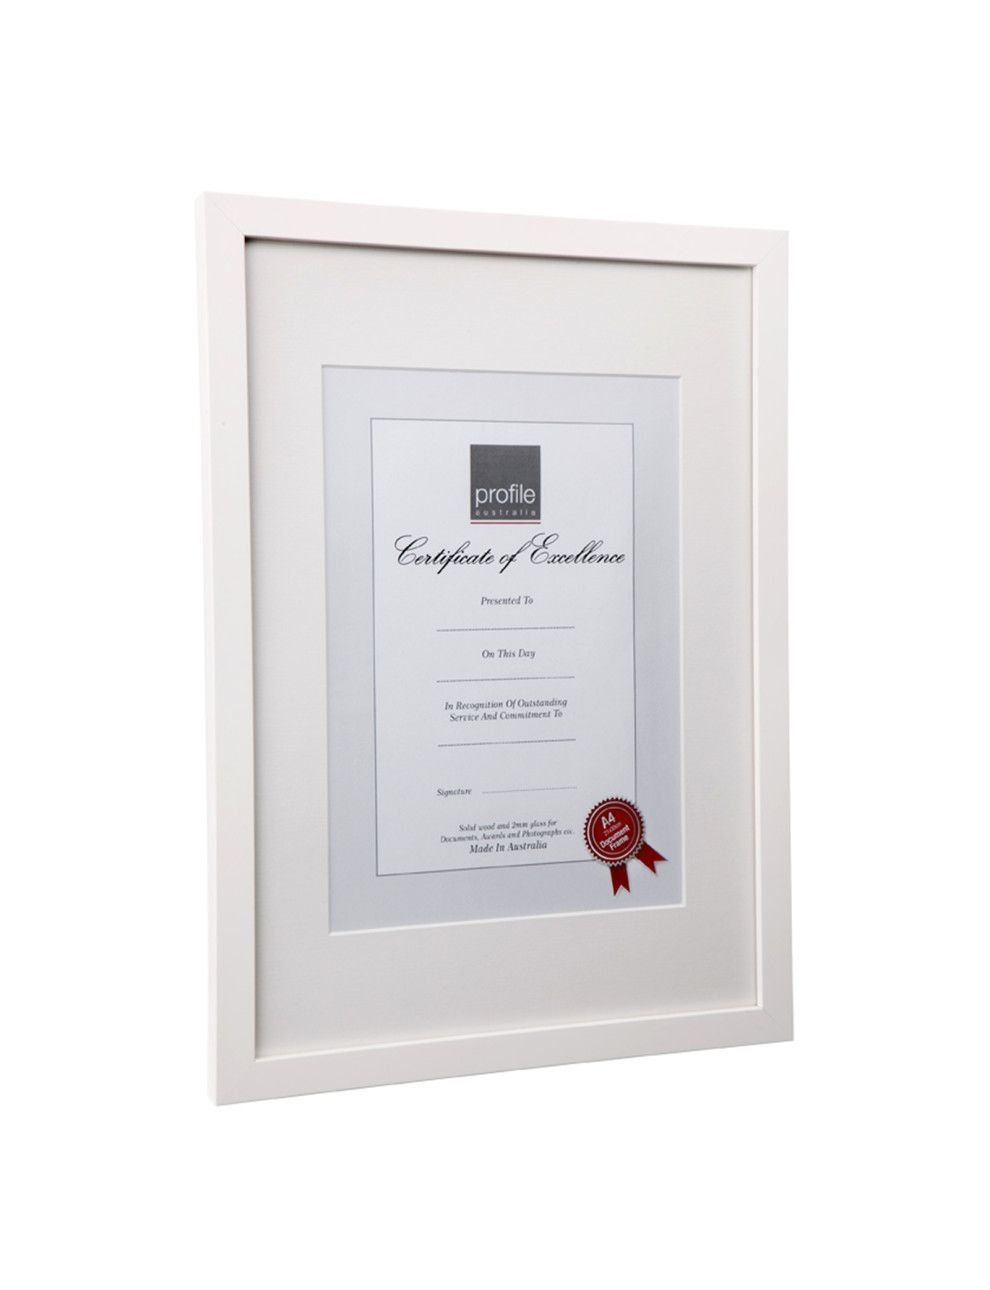 Print and Certificate Timber Photo Frame A4 matted or A3 | David ...